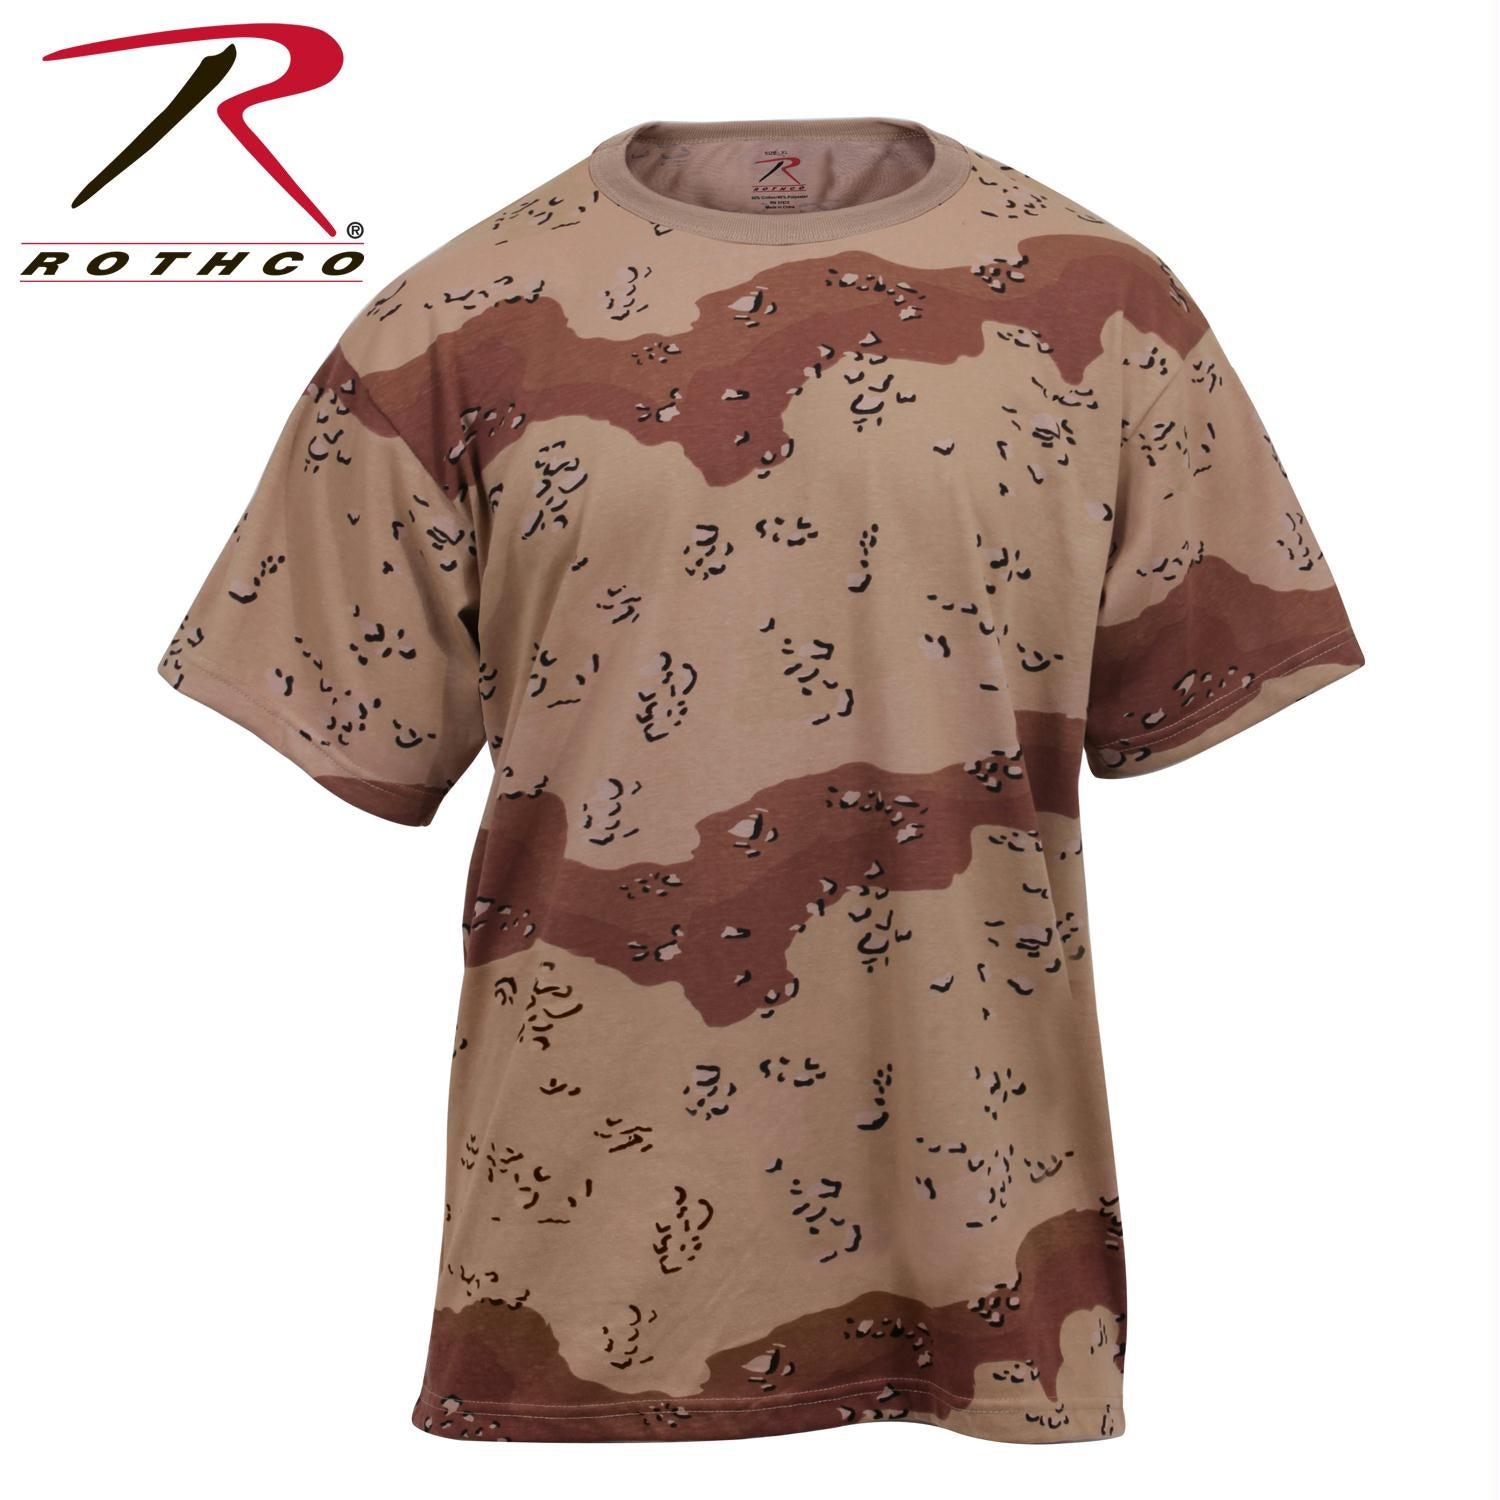 Rothco Camo T-Shirts - 6-Color Desert Camo / XL